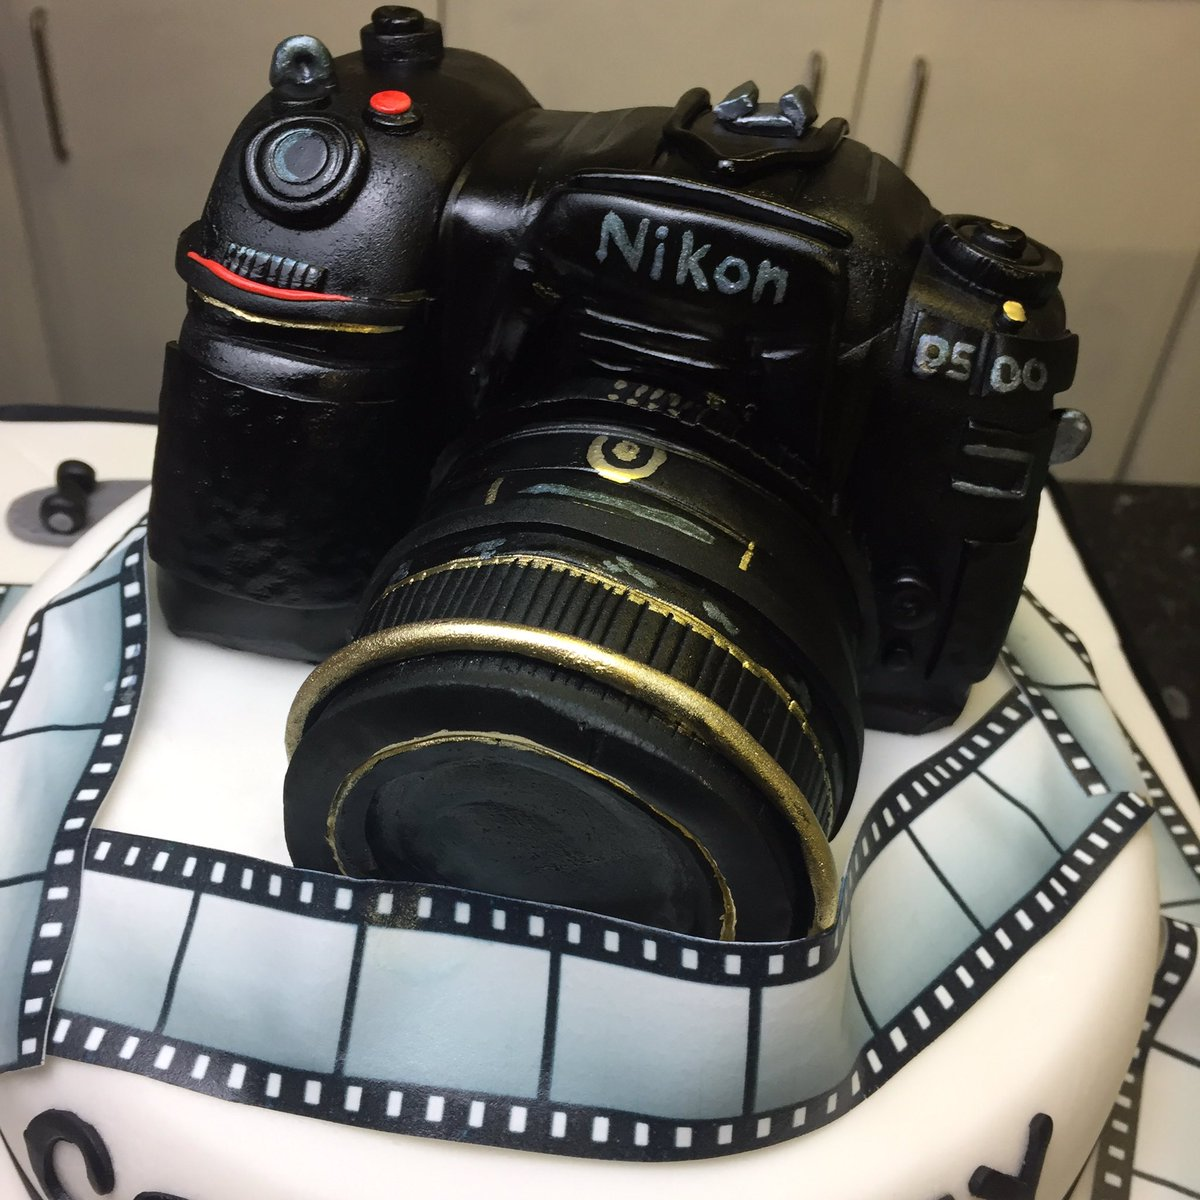 Magnificent The Bakeking On Twitter Pretty Flashy Latest Cake Order Nikon Personalised Birthday Cards Sponlily Jamesorg